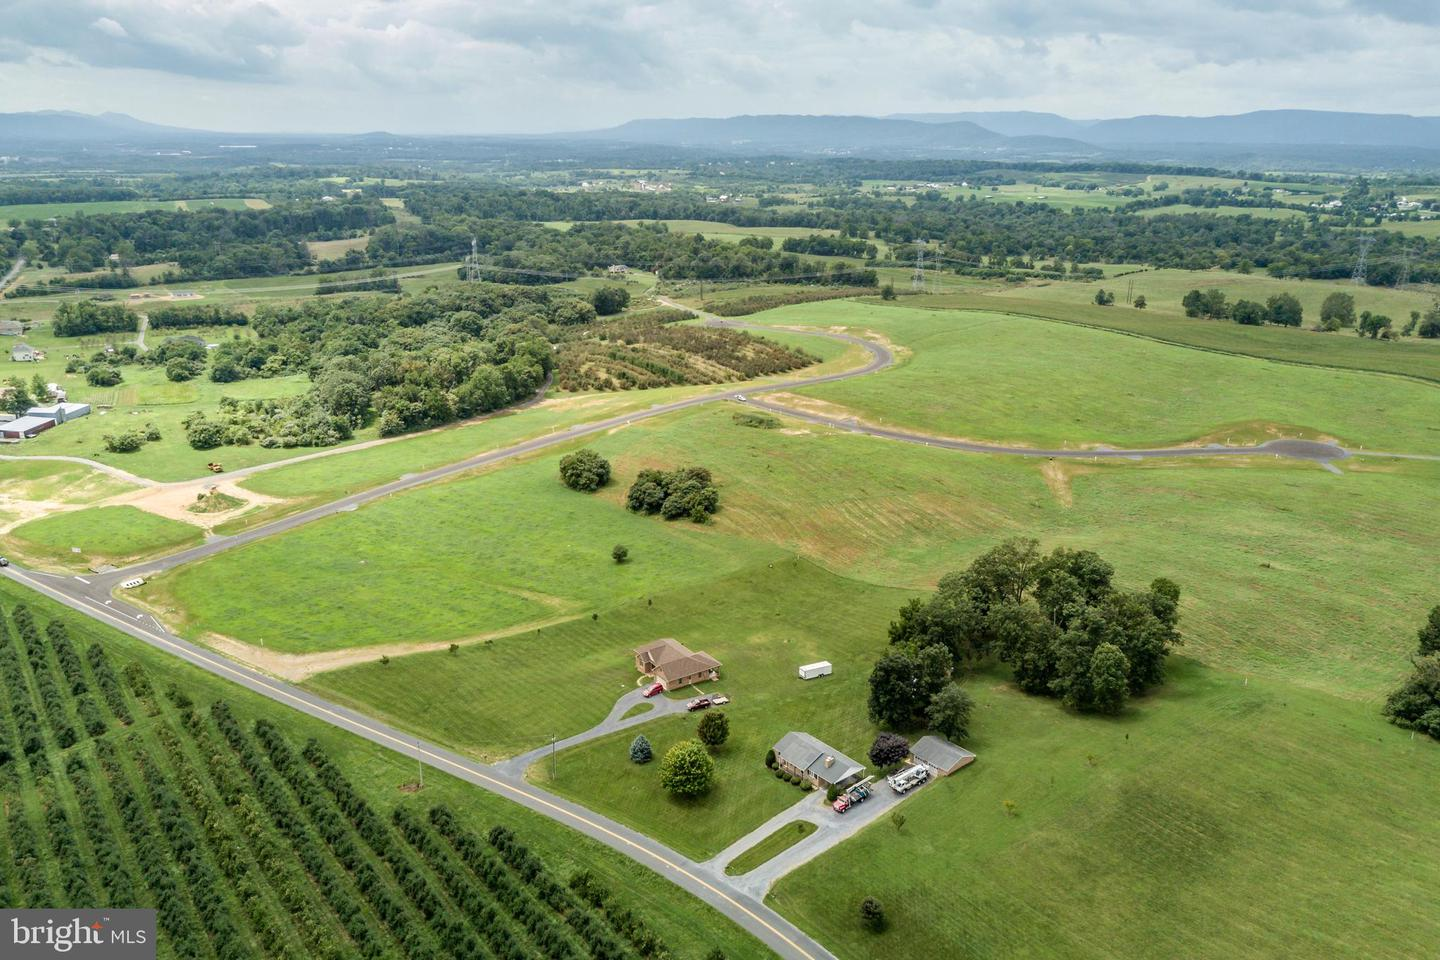 Land for Sale at L 13 Pomme Circle L 13 Pomme Circle Stephens City, Virginia 22655 United States